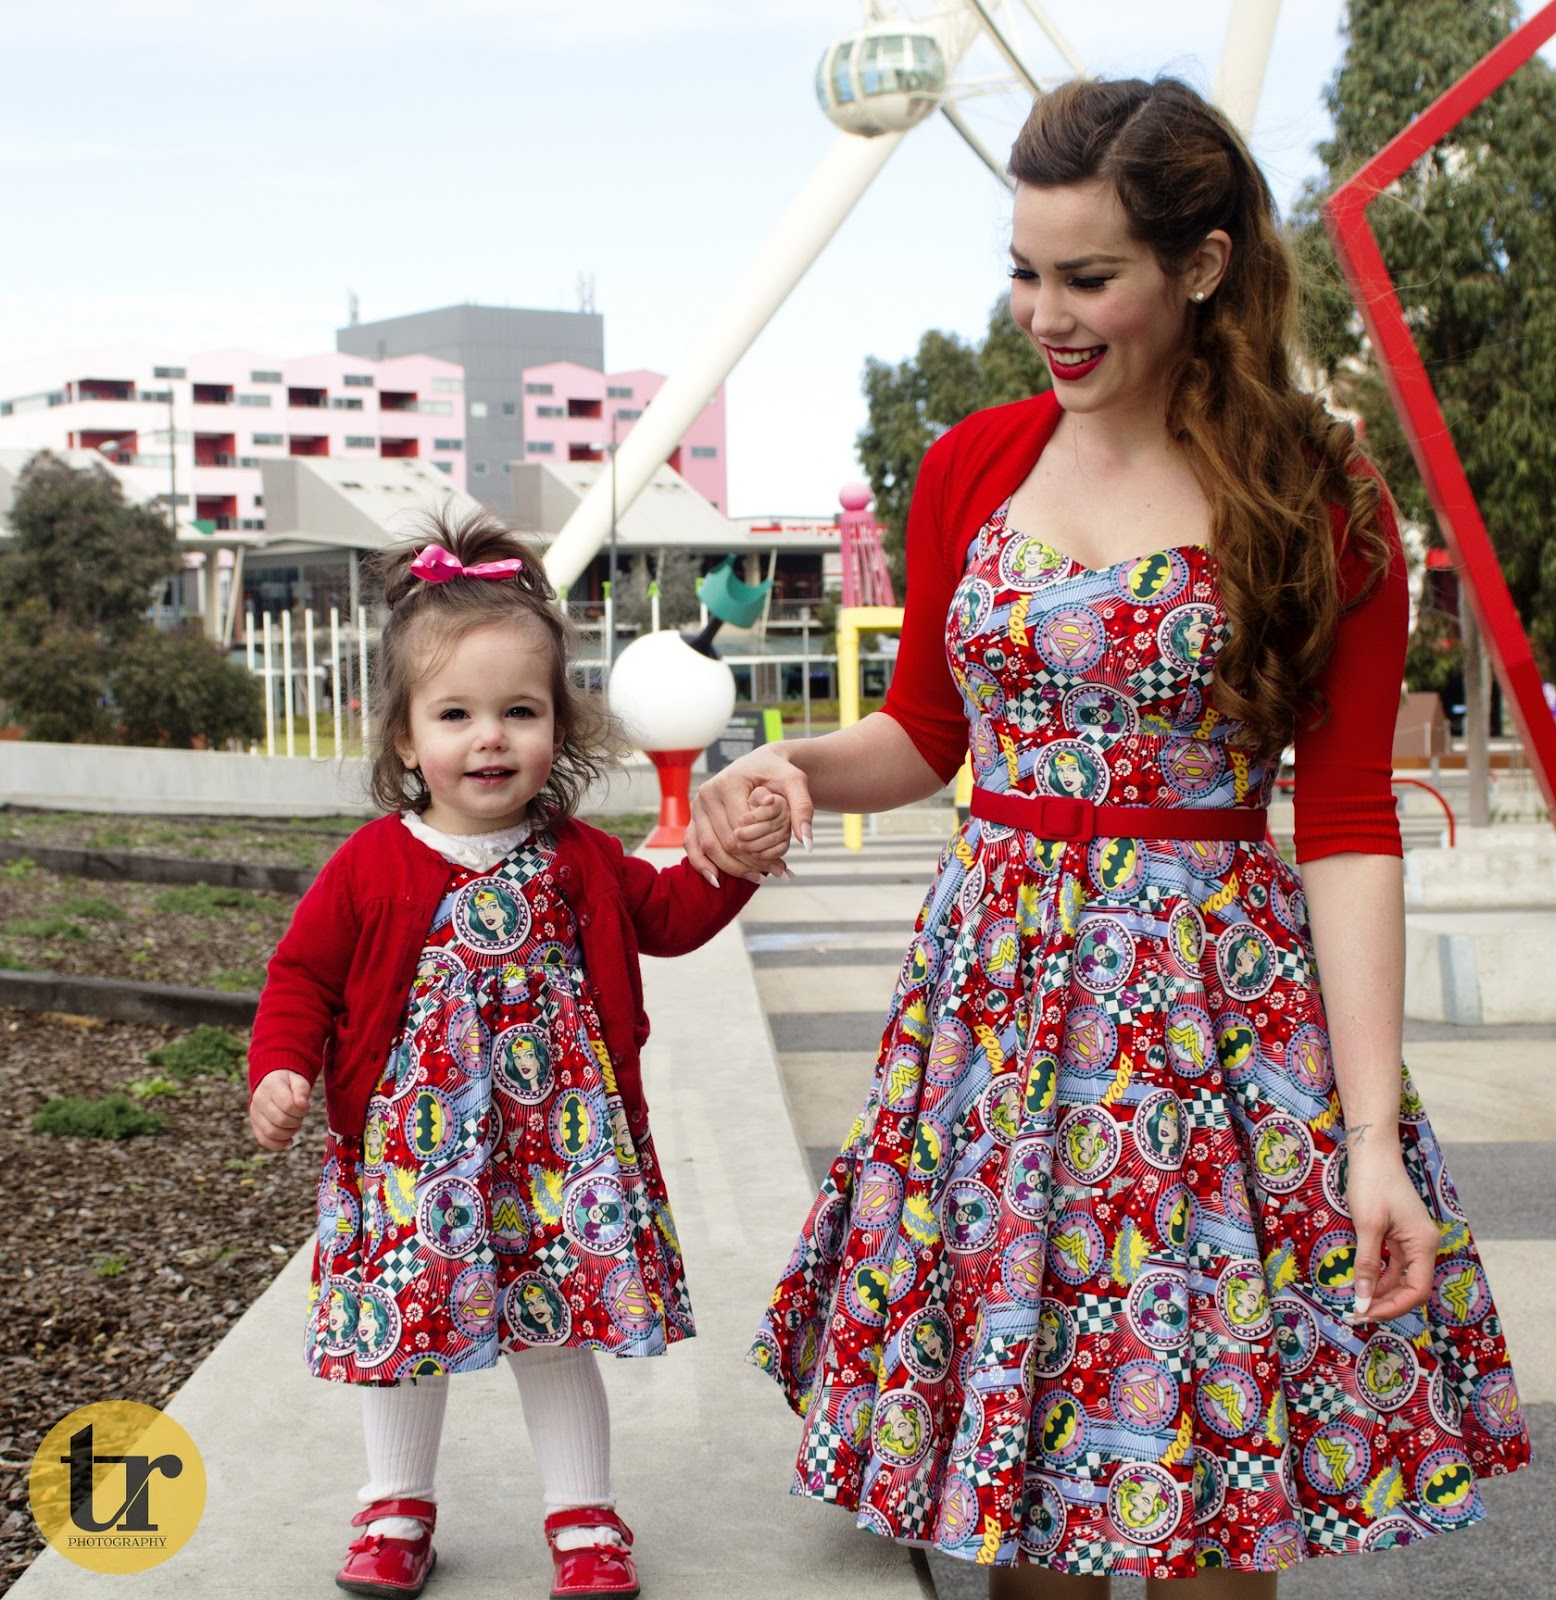 Matching Mother Daughter Outfits - Pow Pow! in Pigtails and Pirates ...